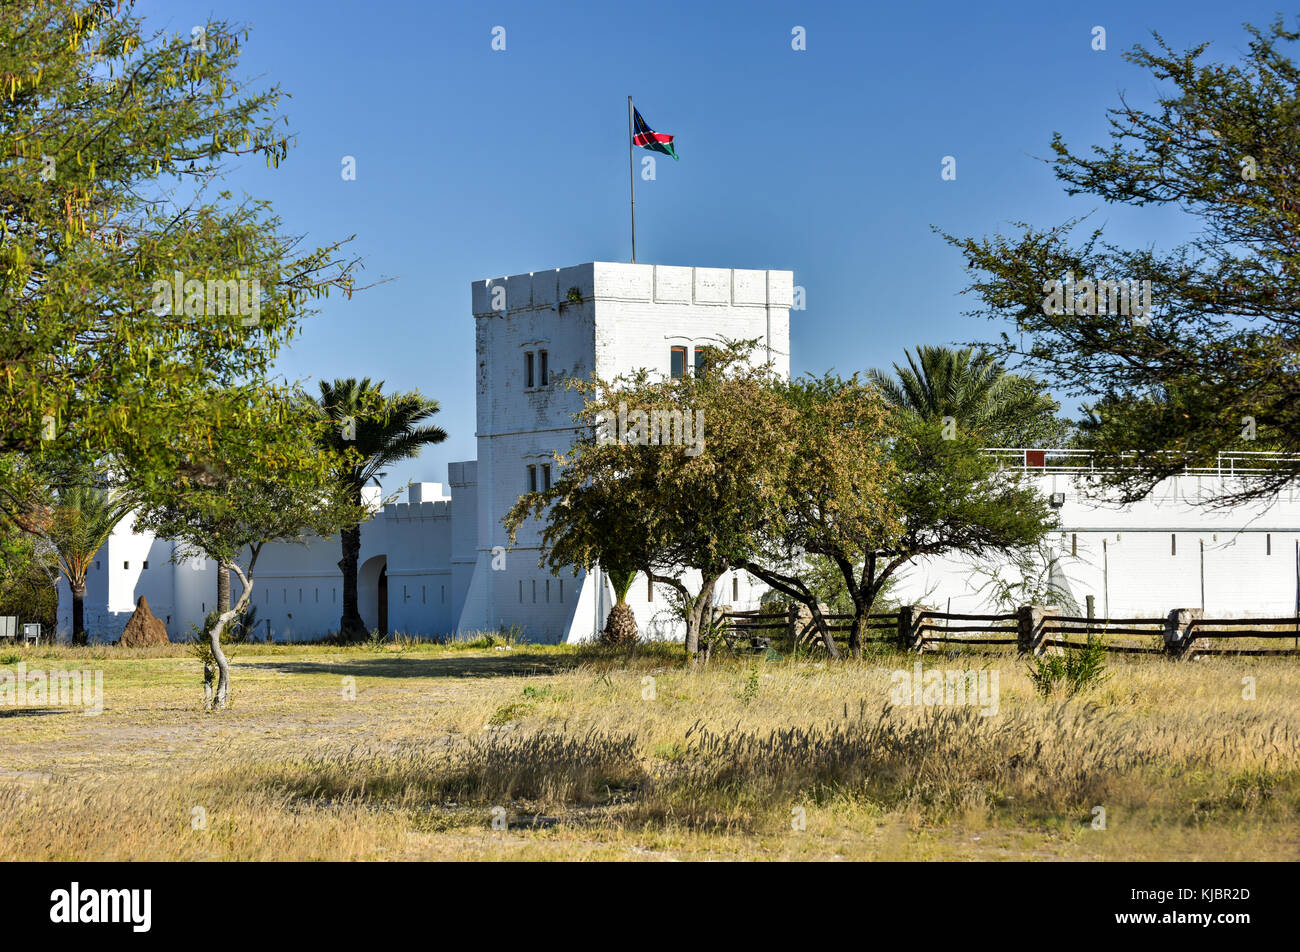 Fort Namutoni in Etosha National Park in Nambia, Africa. It was originally a German police post. - Stock Image